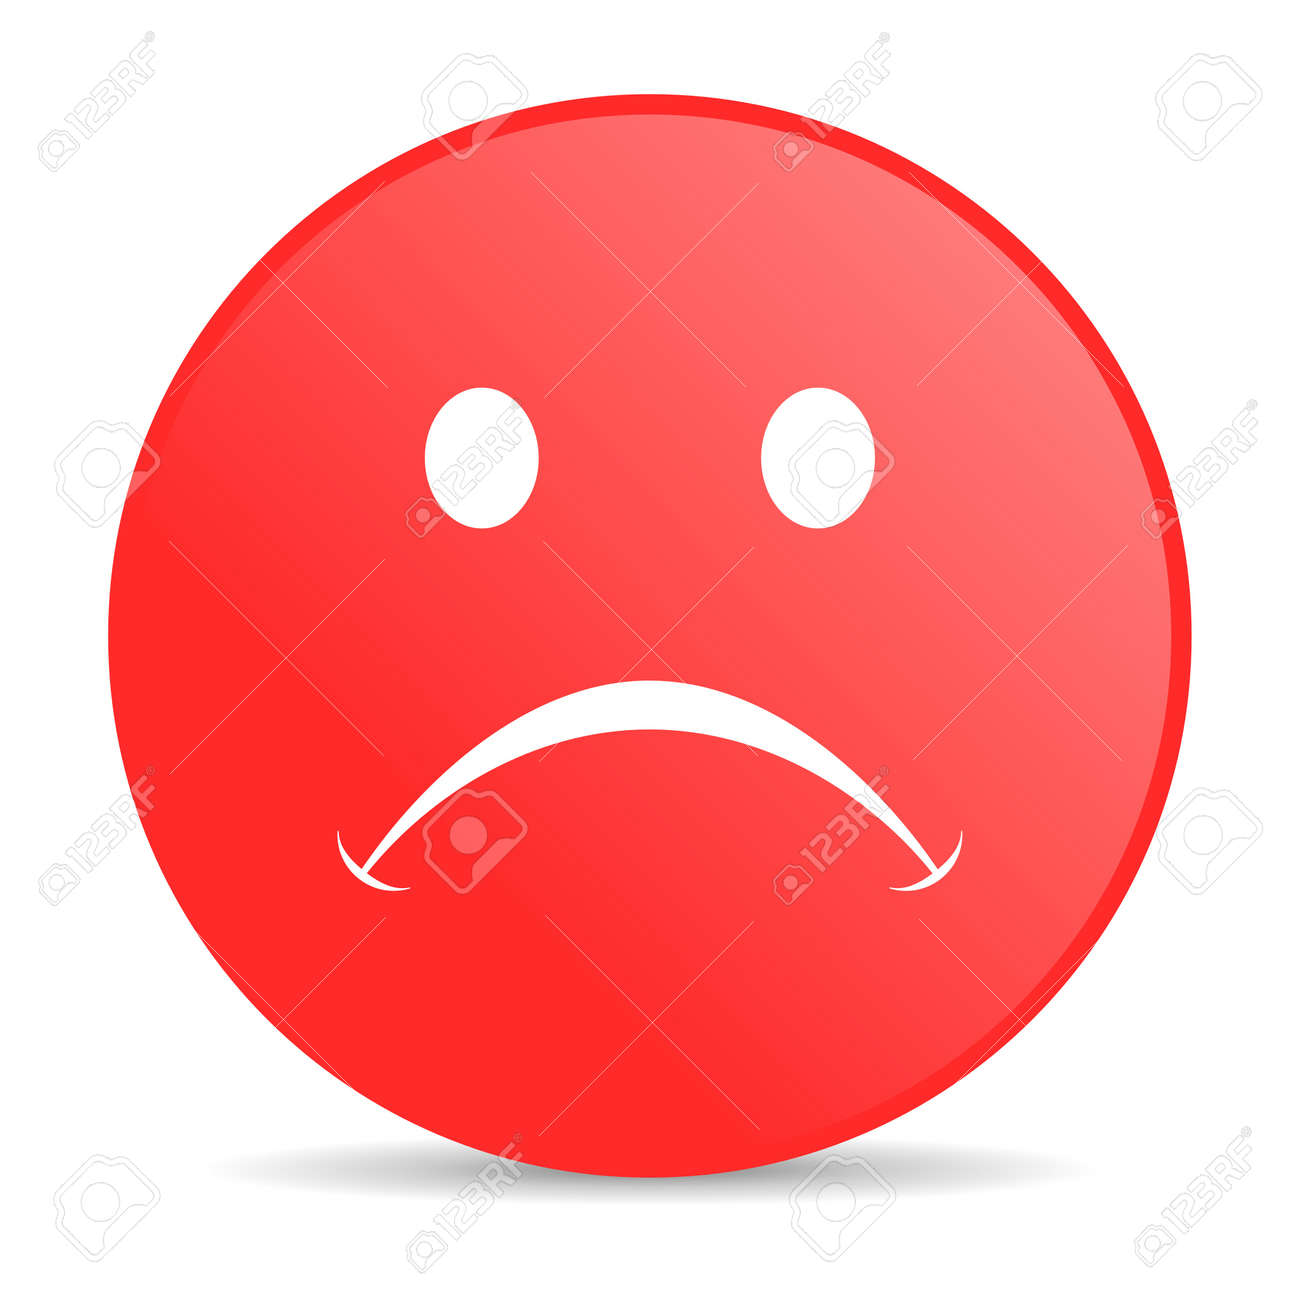 cry red circle web glossy icon Stock Photo - 19228001